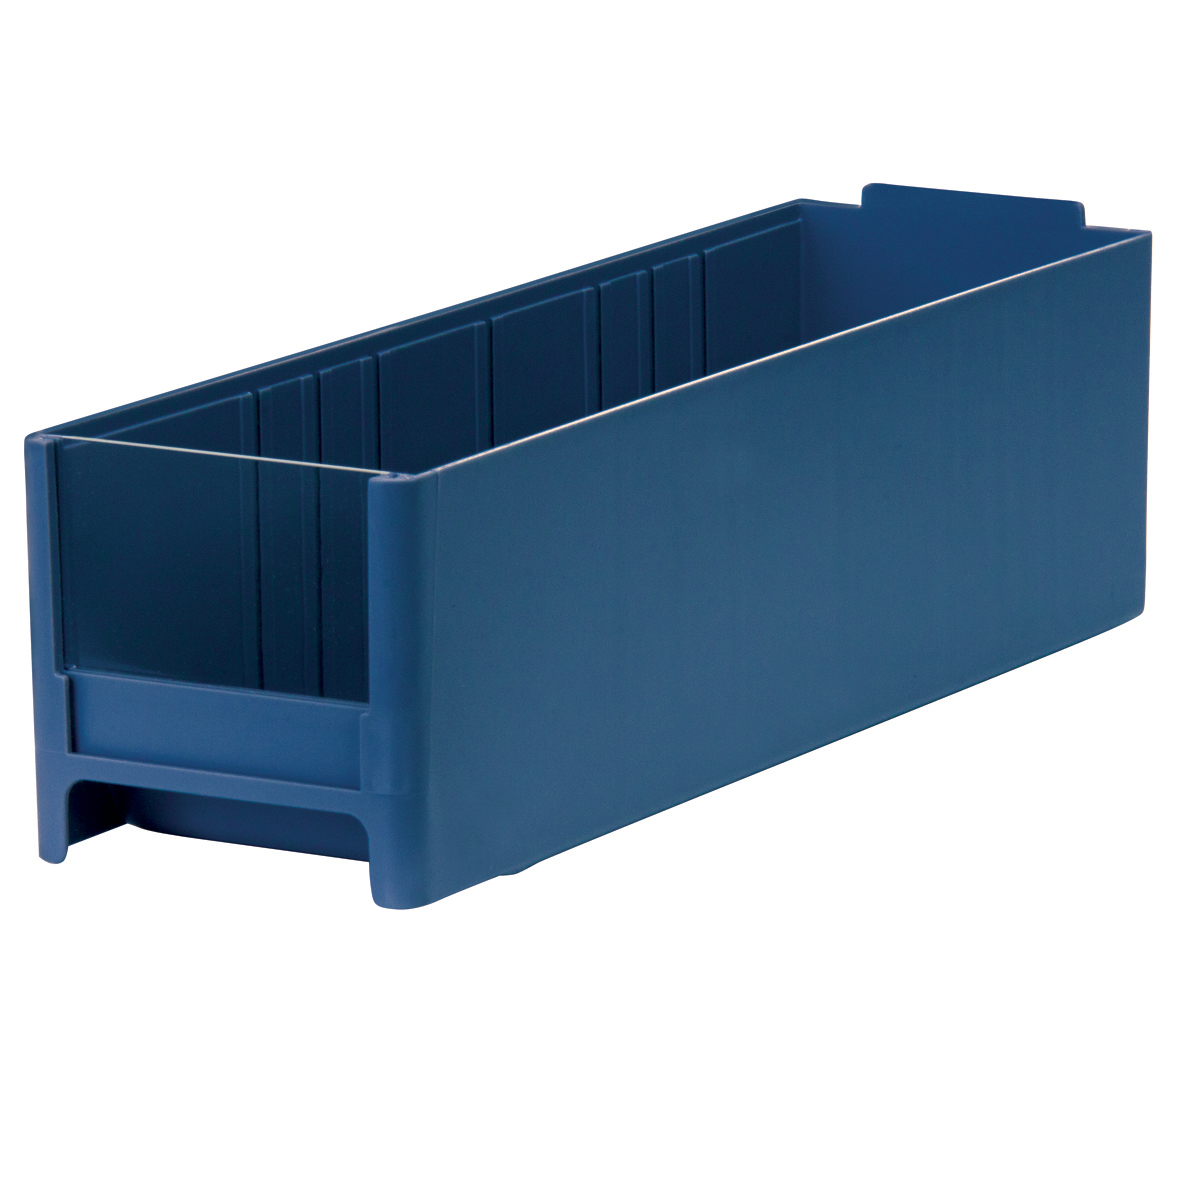 19-Series Cabinet Drawer 3-3/16 x 3-1/16 x 10-9/16, Blue.  This item sold in carton quantities of 30.